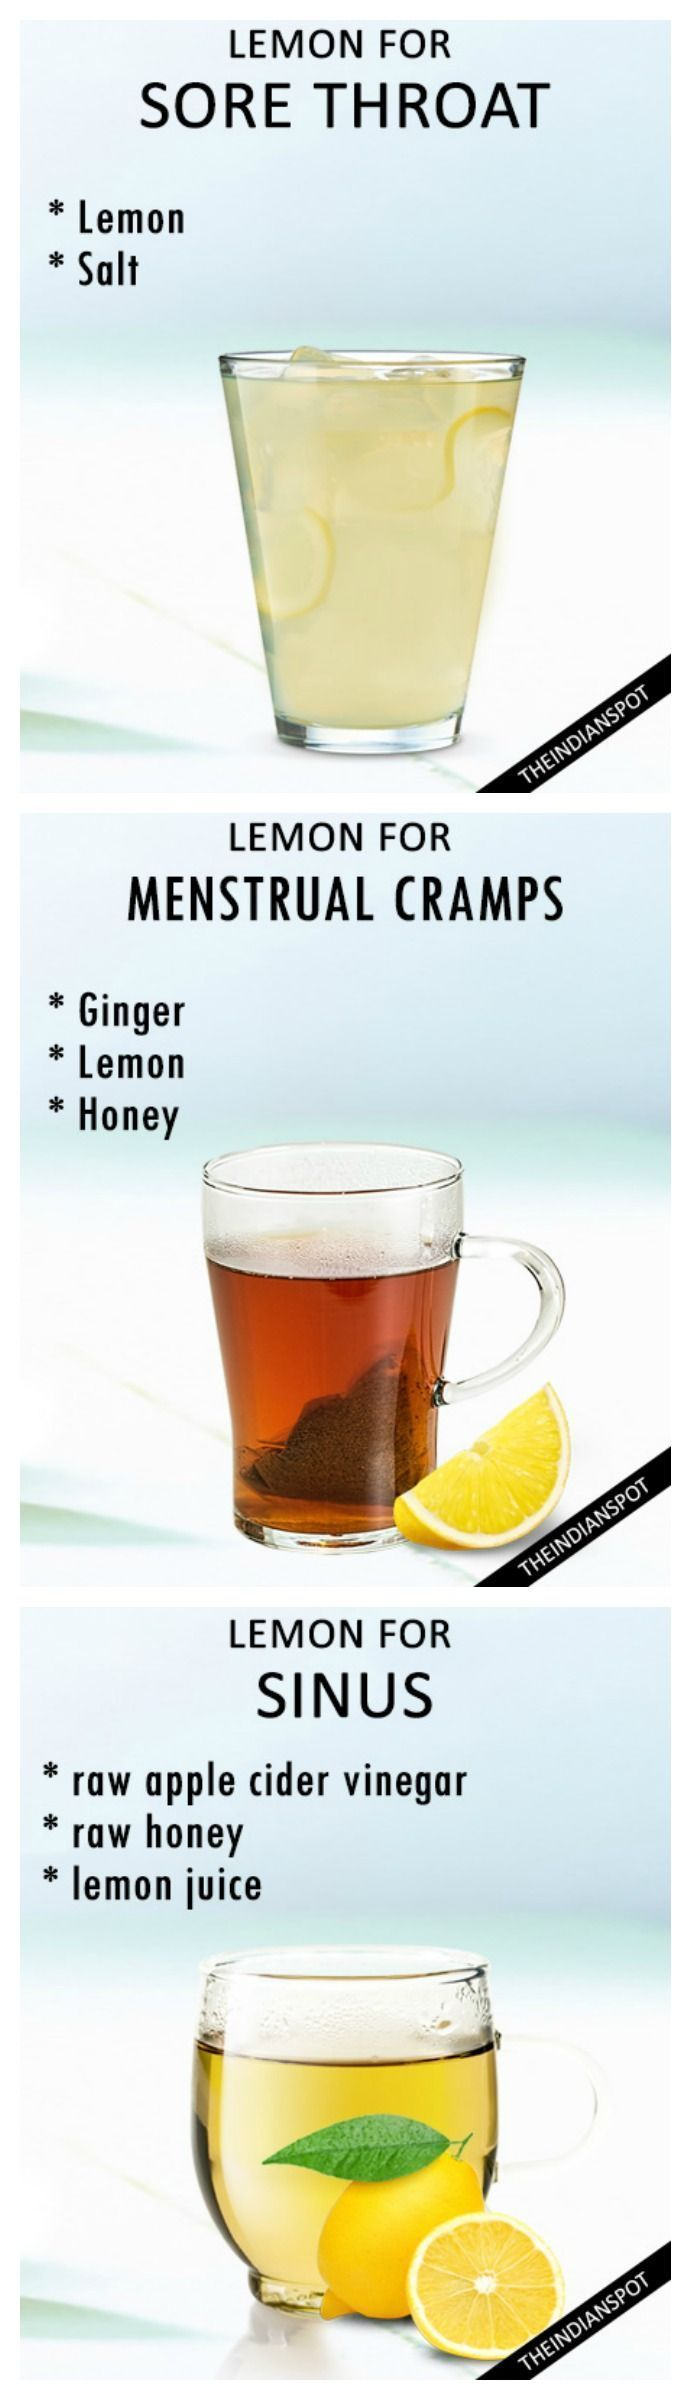 Home remedies using lemon - menstrual cramps, sore throat, and more... http://endofsnores.com/how-to-make-someone-stop-snoring-while-sleeping/how-to-stop-snoring-naturally/ http://endsnoretoday.com/